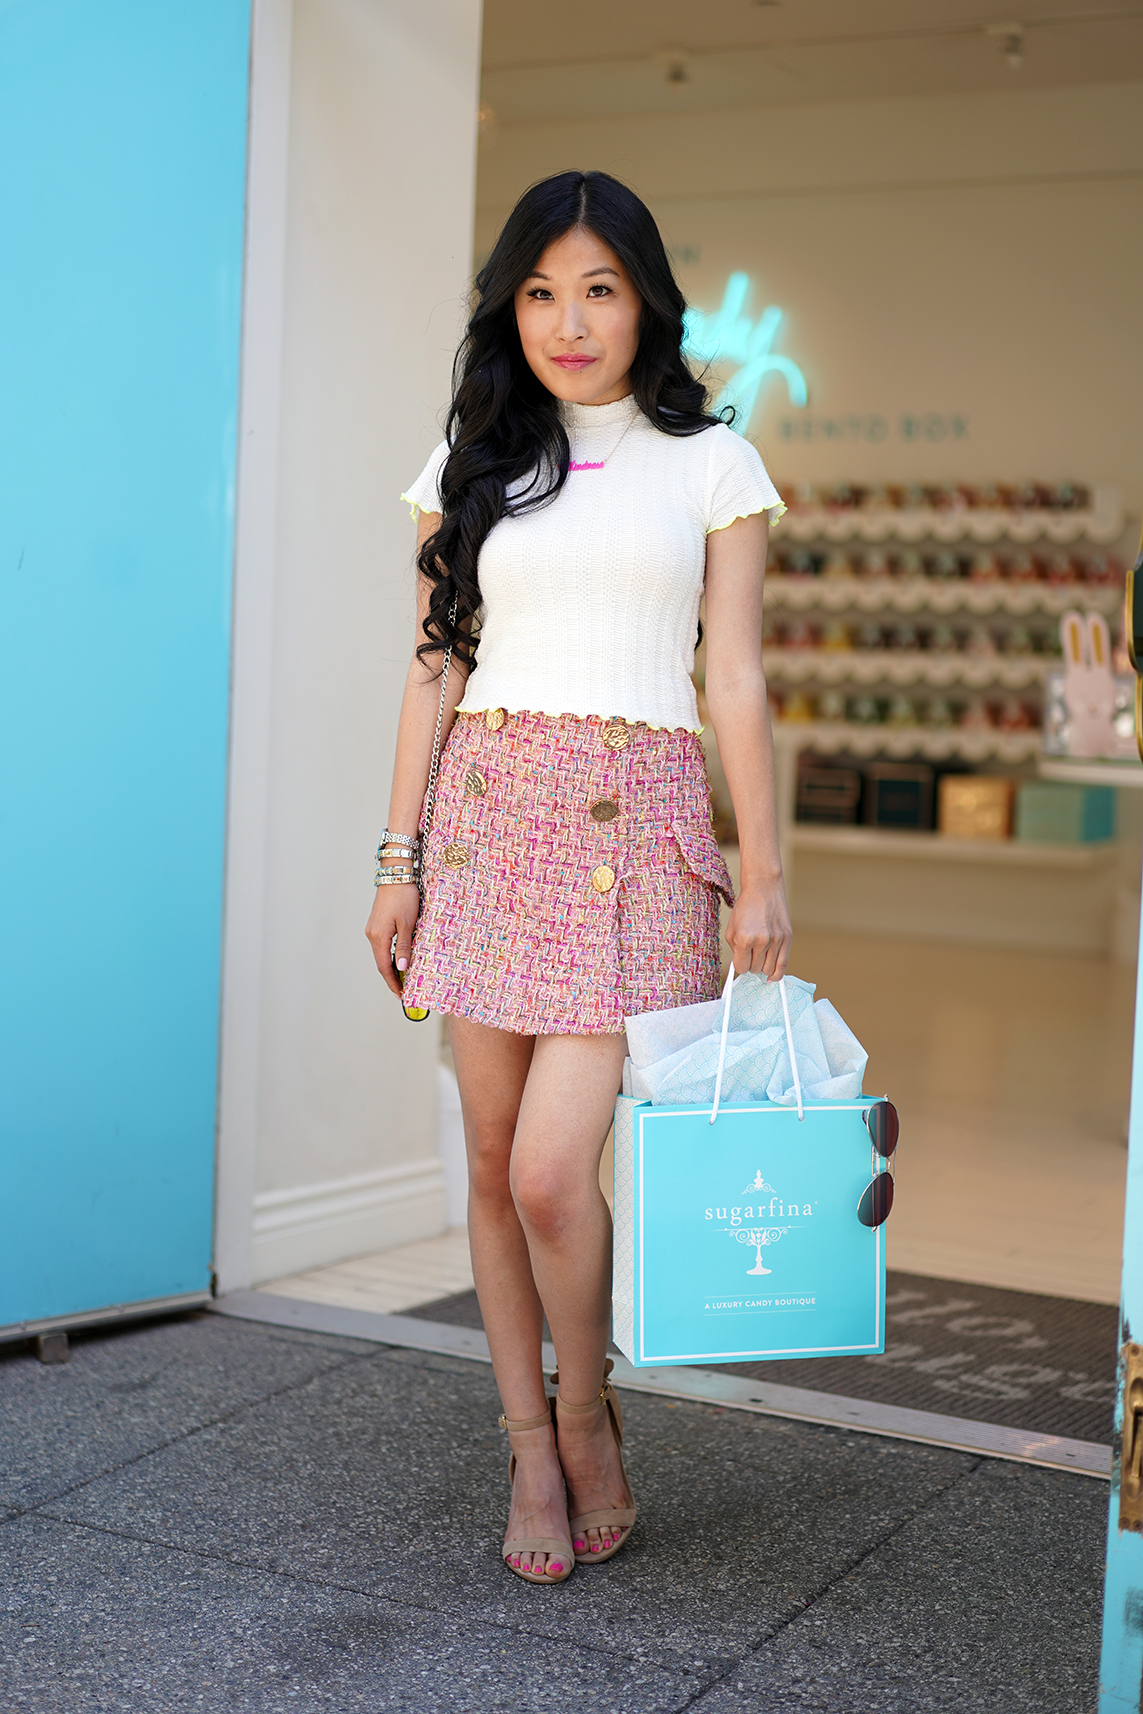 Storets Hera Tweed Classic Skirt-Pink, Topshop's Contrast Tipping Lettuce Top in white with neon edges, Moon and Lola hot pink personalized necklace saying #Kindness outside Sugarfina store